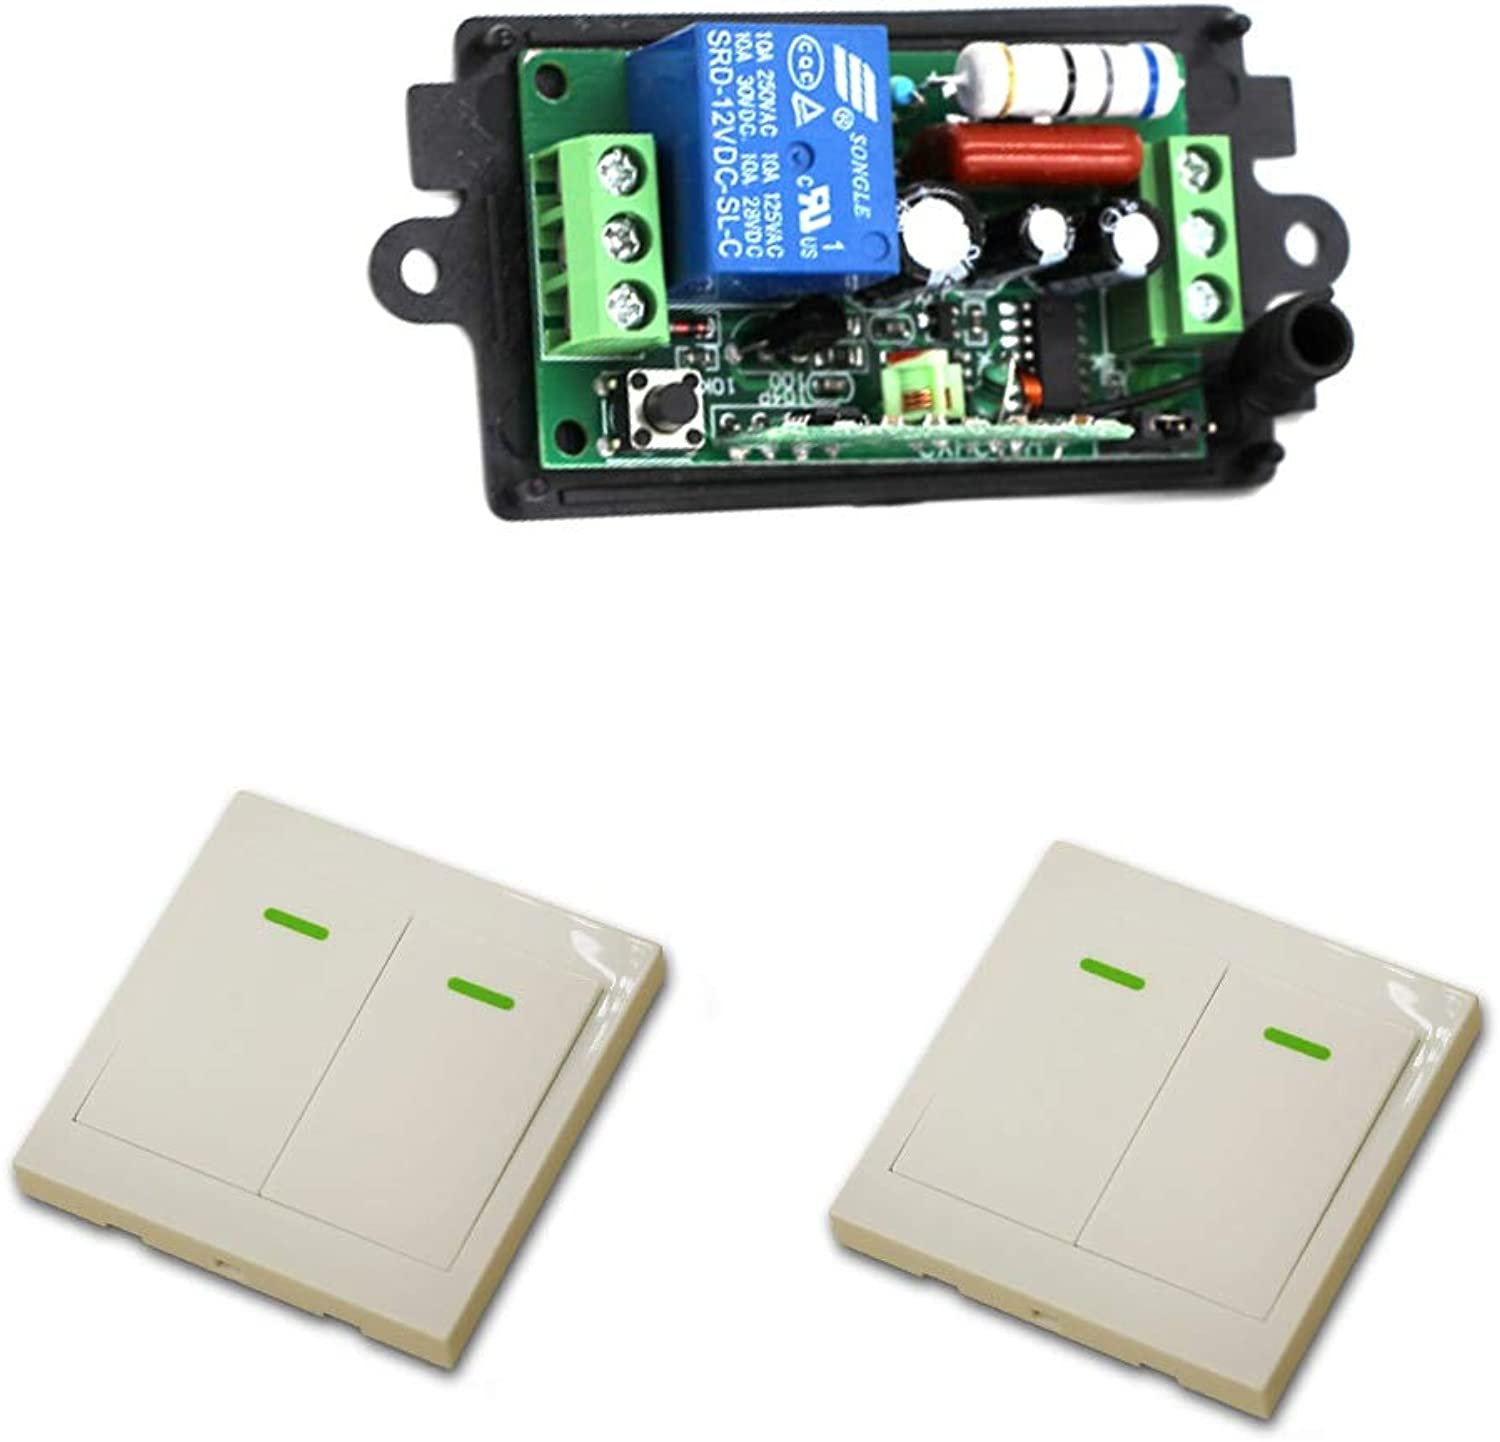 110V 220V Wireless Remote Control Switch Wireless Power Relay Receiver Transmitter Radio Light Switch Smart House  (color  433Mhz 110V)